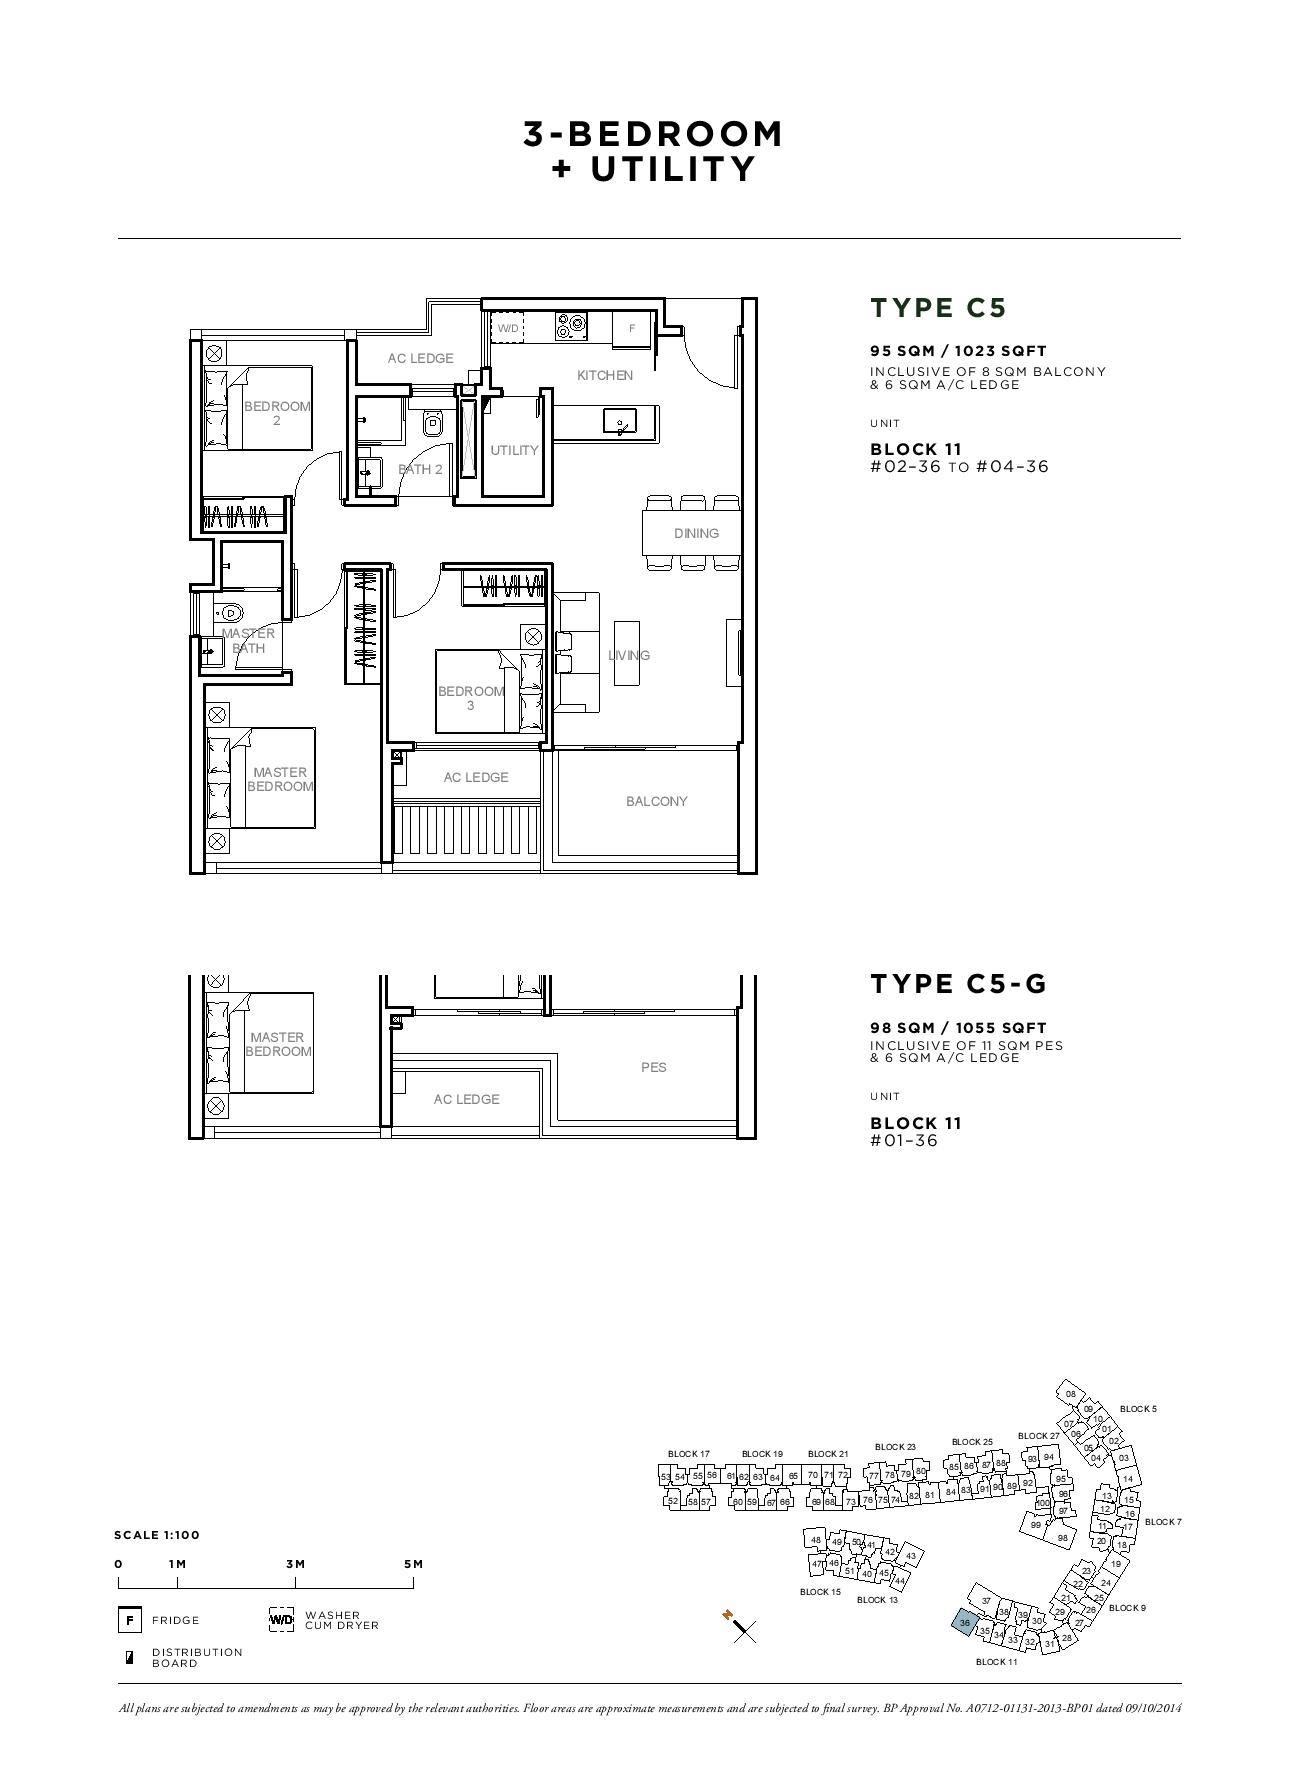 Sophia Hills 3 Bedroom + Utility Type C5 Floor Plans